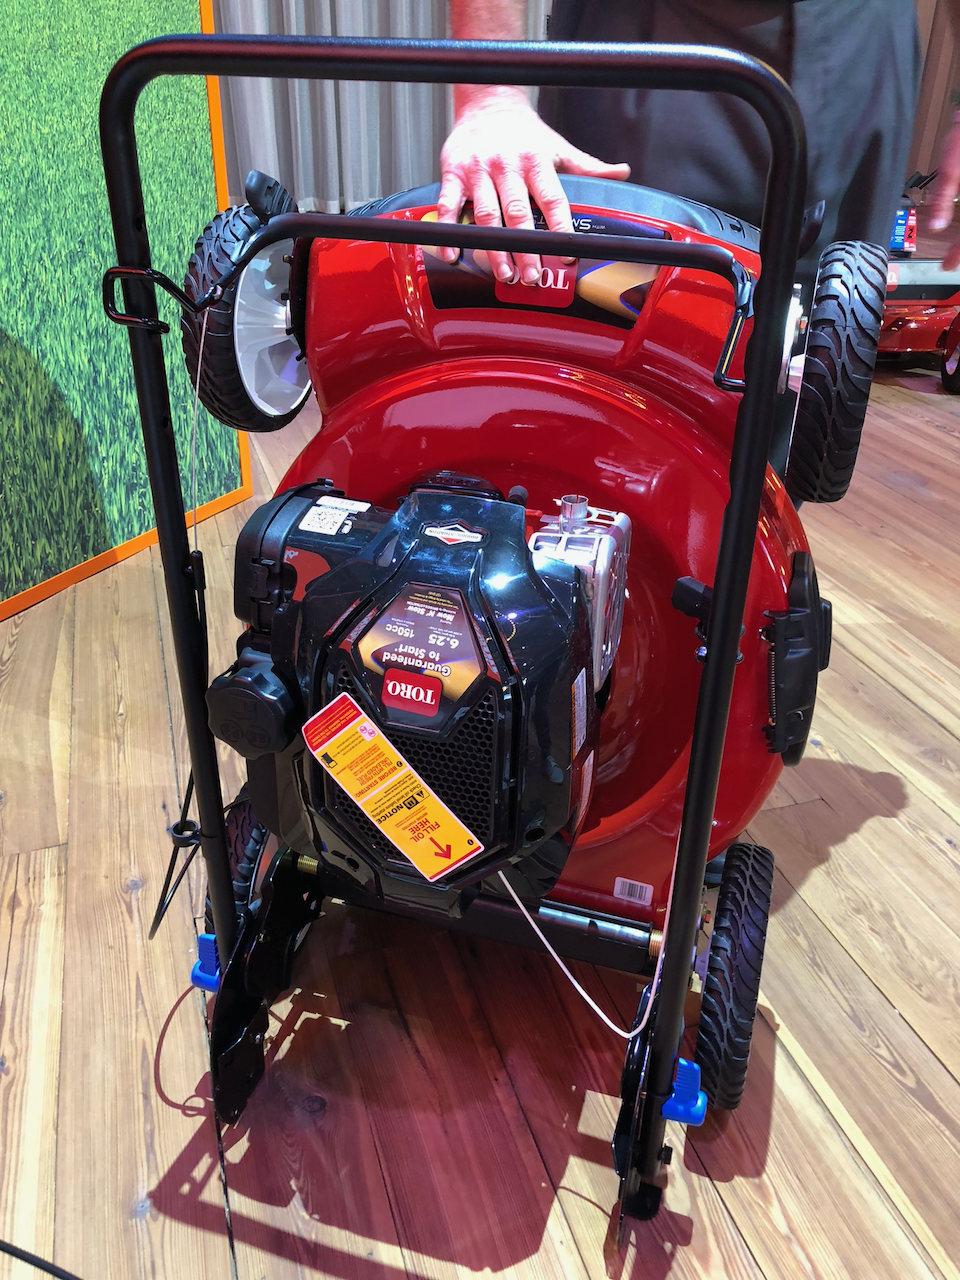 Folding Toro lawnmower.